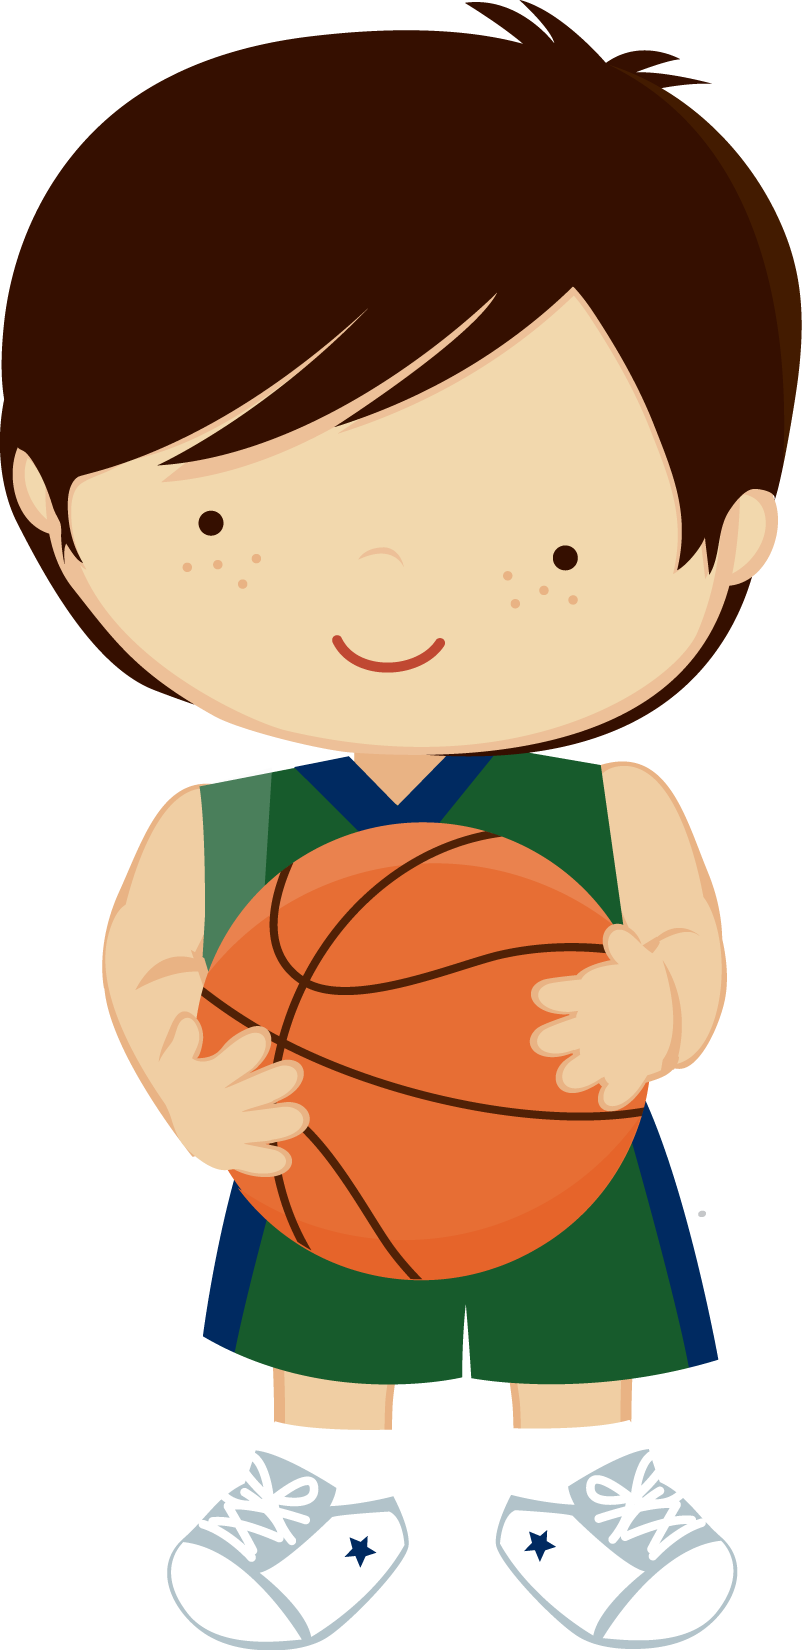 ZWD_White_Star ZWD_Basketball_Player_05.png Minus